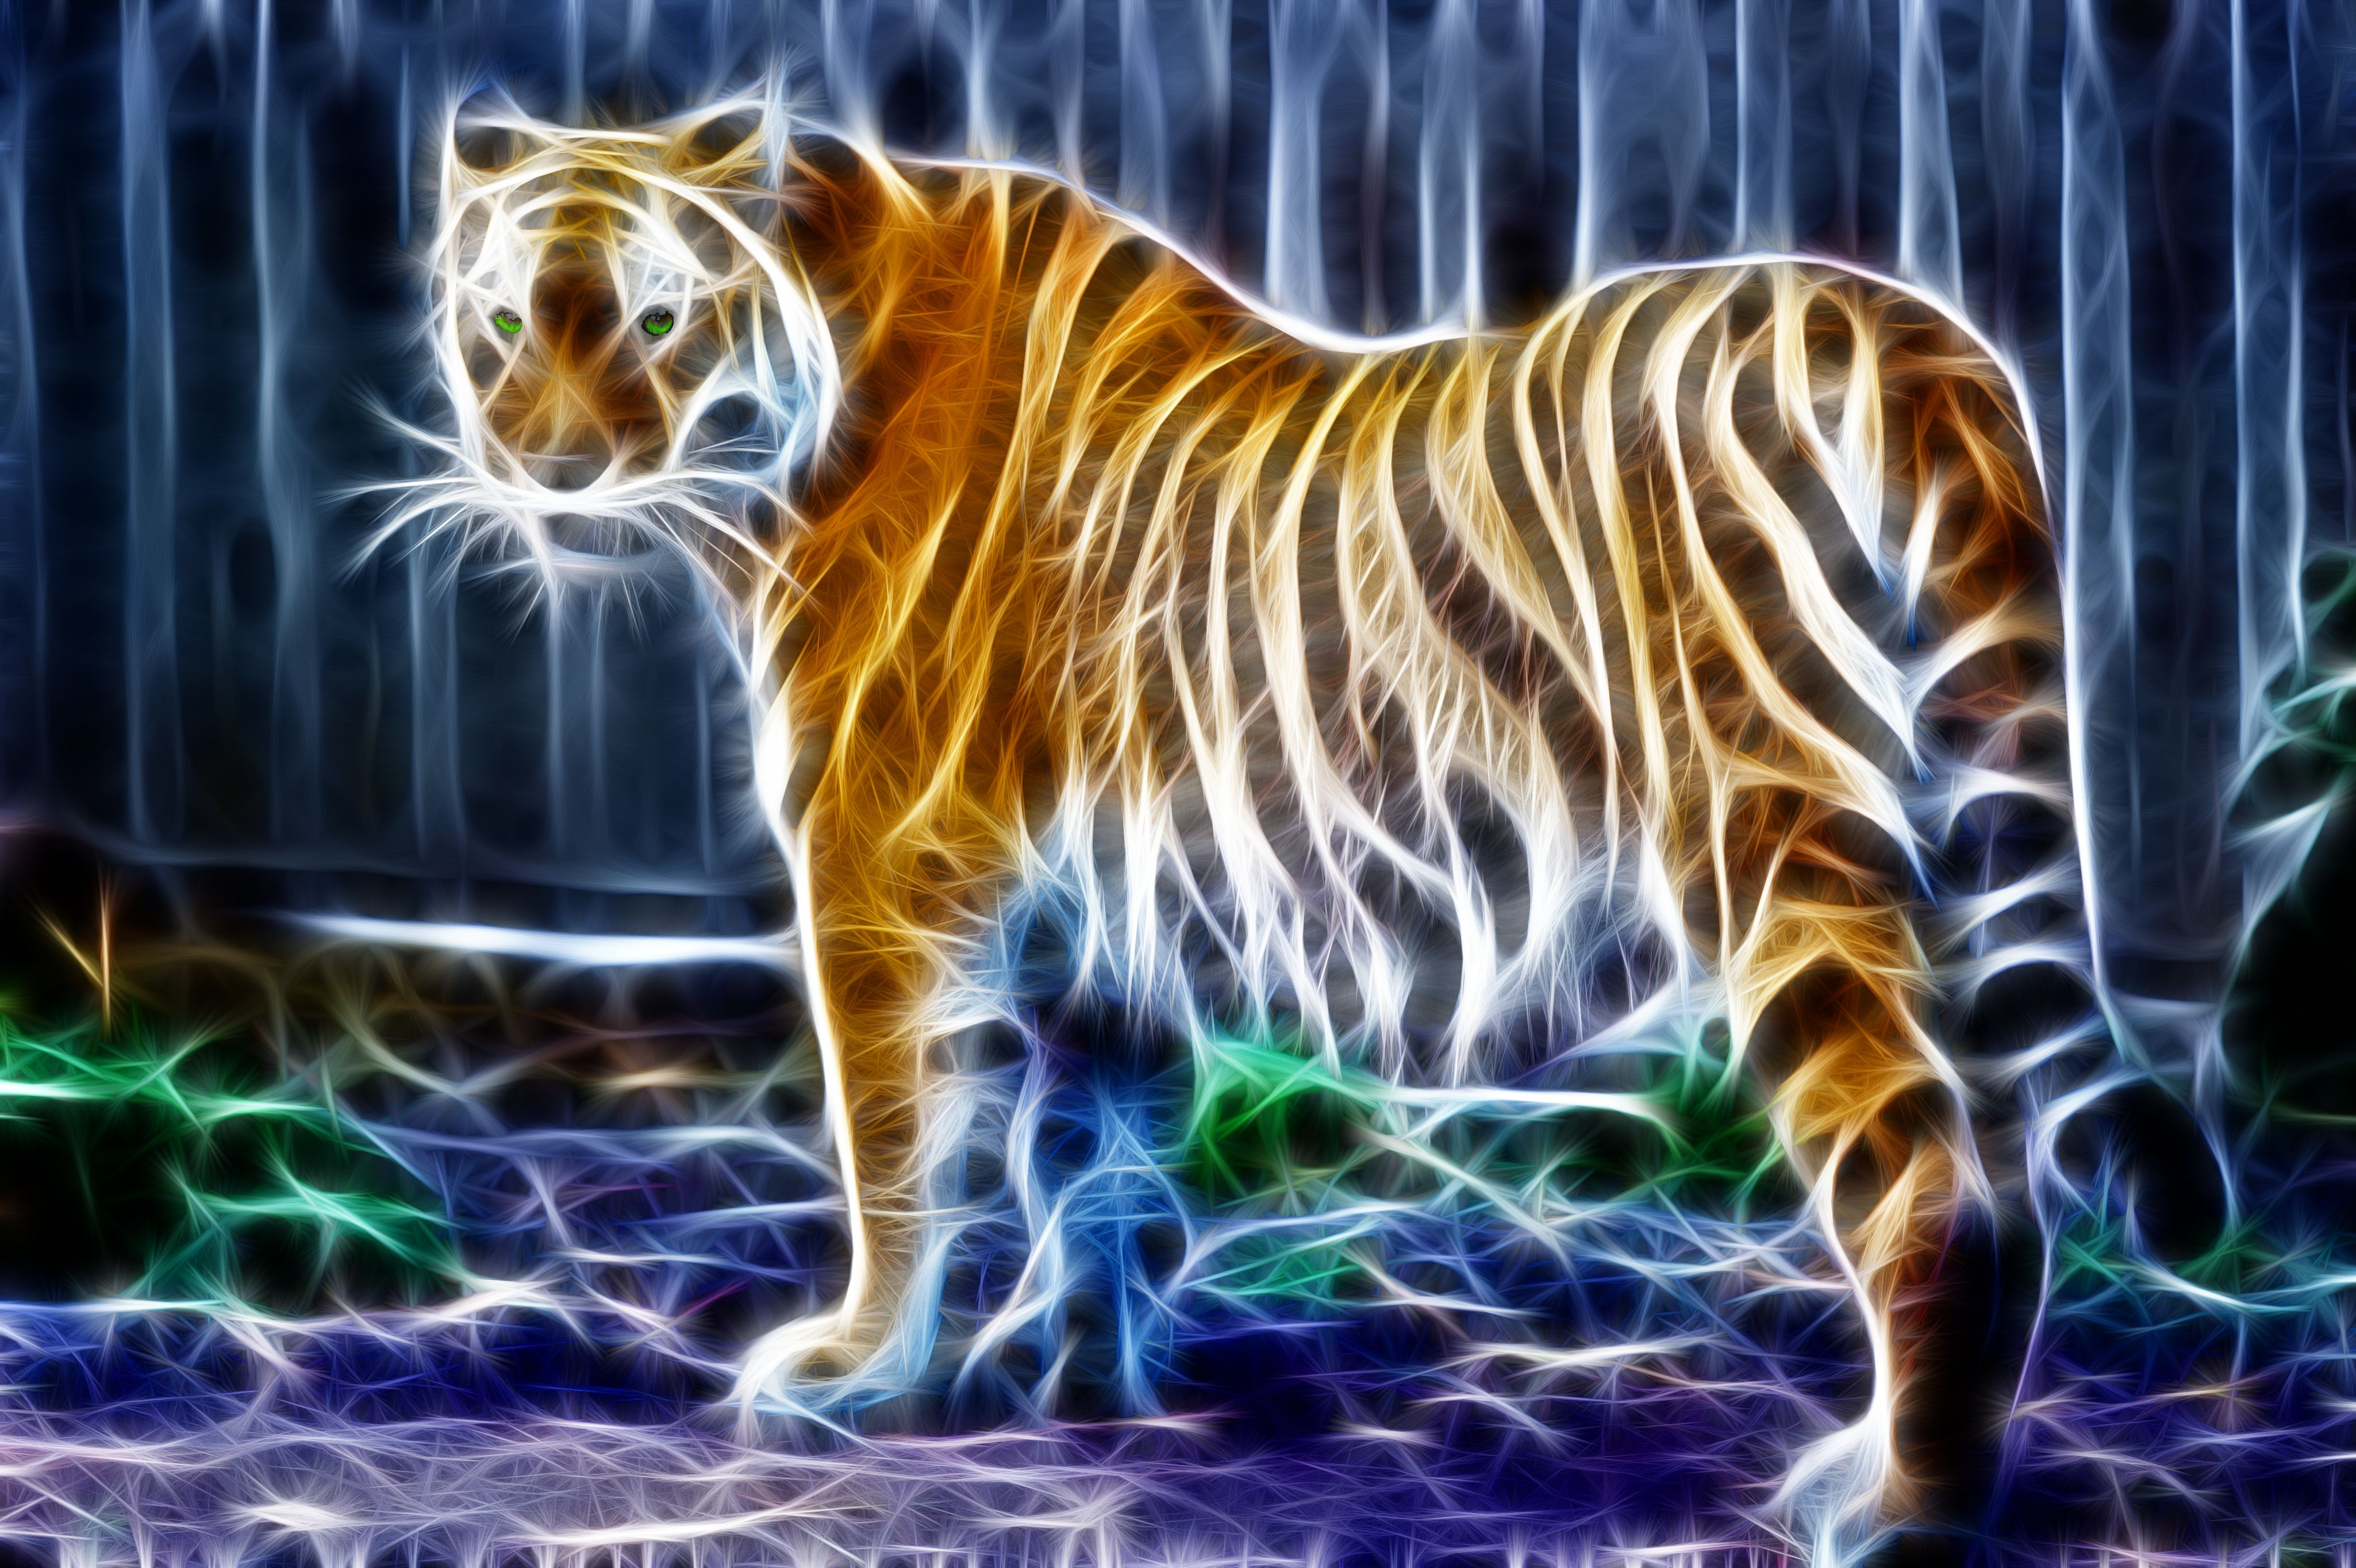 Wallpaper HD  Tiger Image | 4k | 4099x2728 Ultra Background